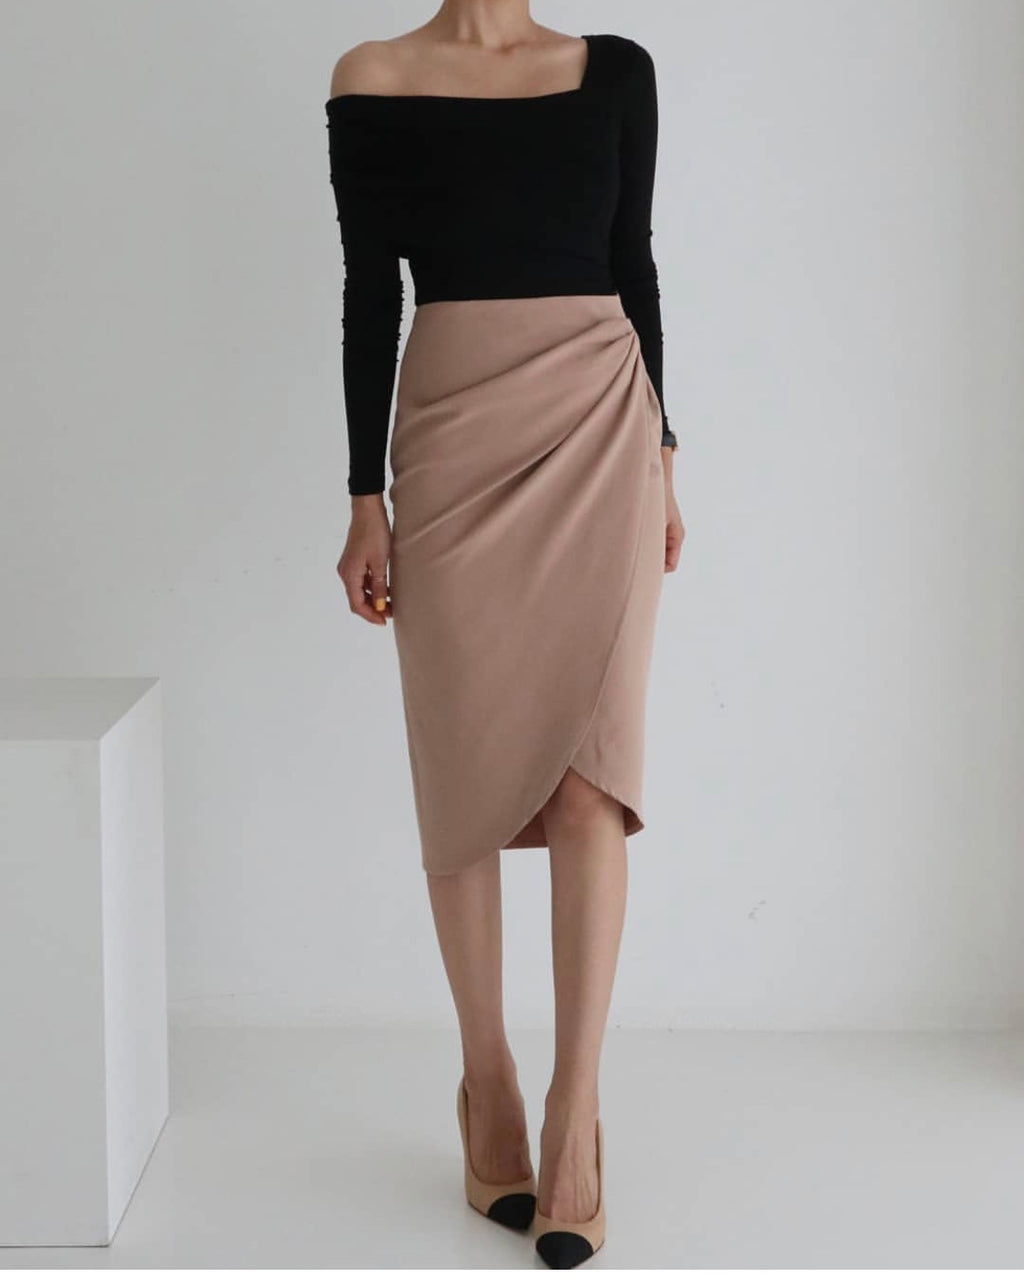 TWIST KNOT WRAP SKIRT - Trendy Fox Boutique